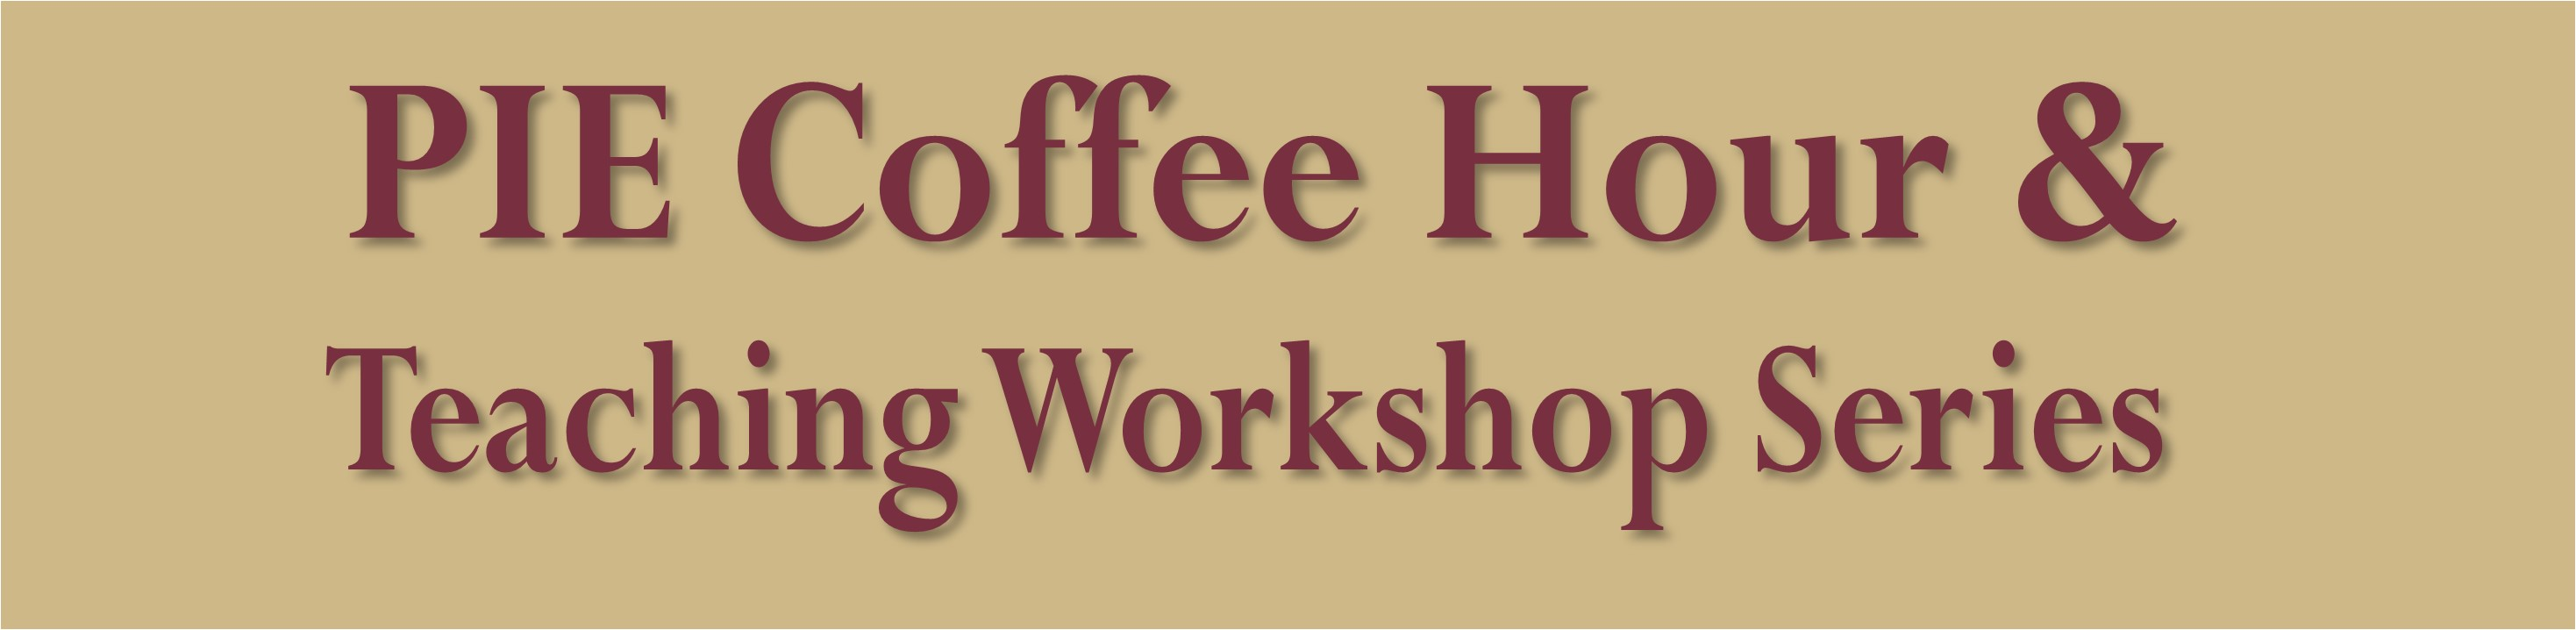 PIE Coffee Hour header 1.jpg